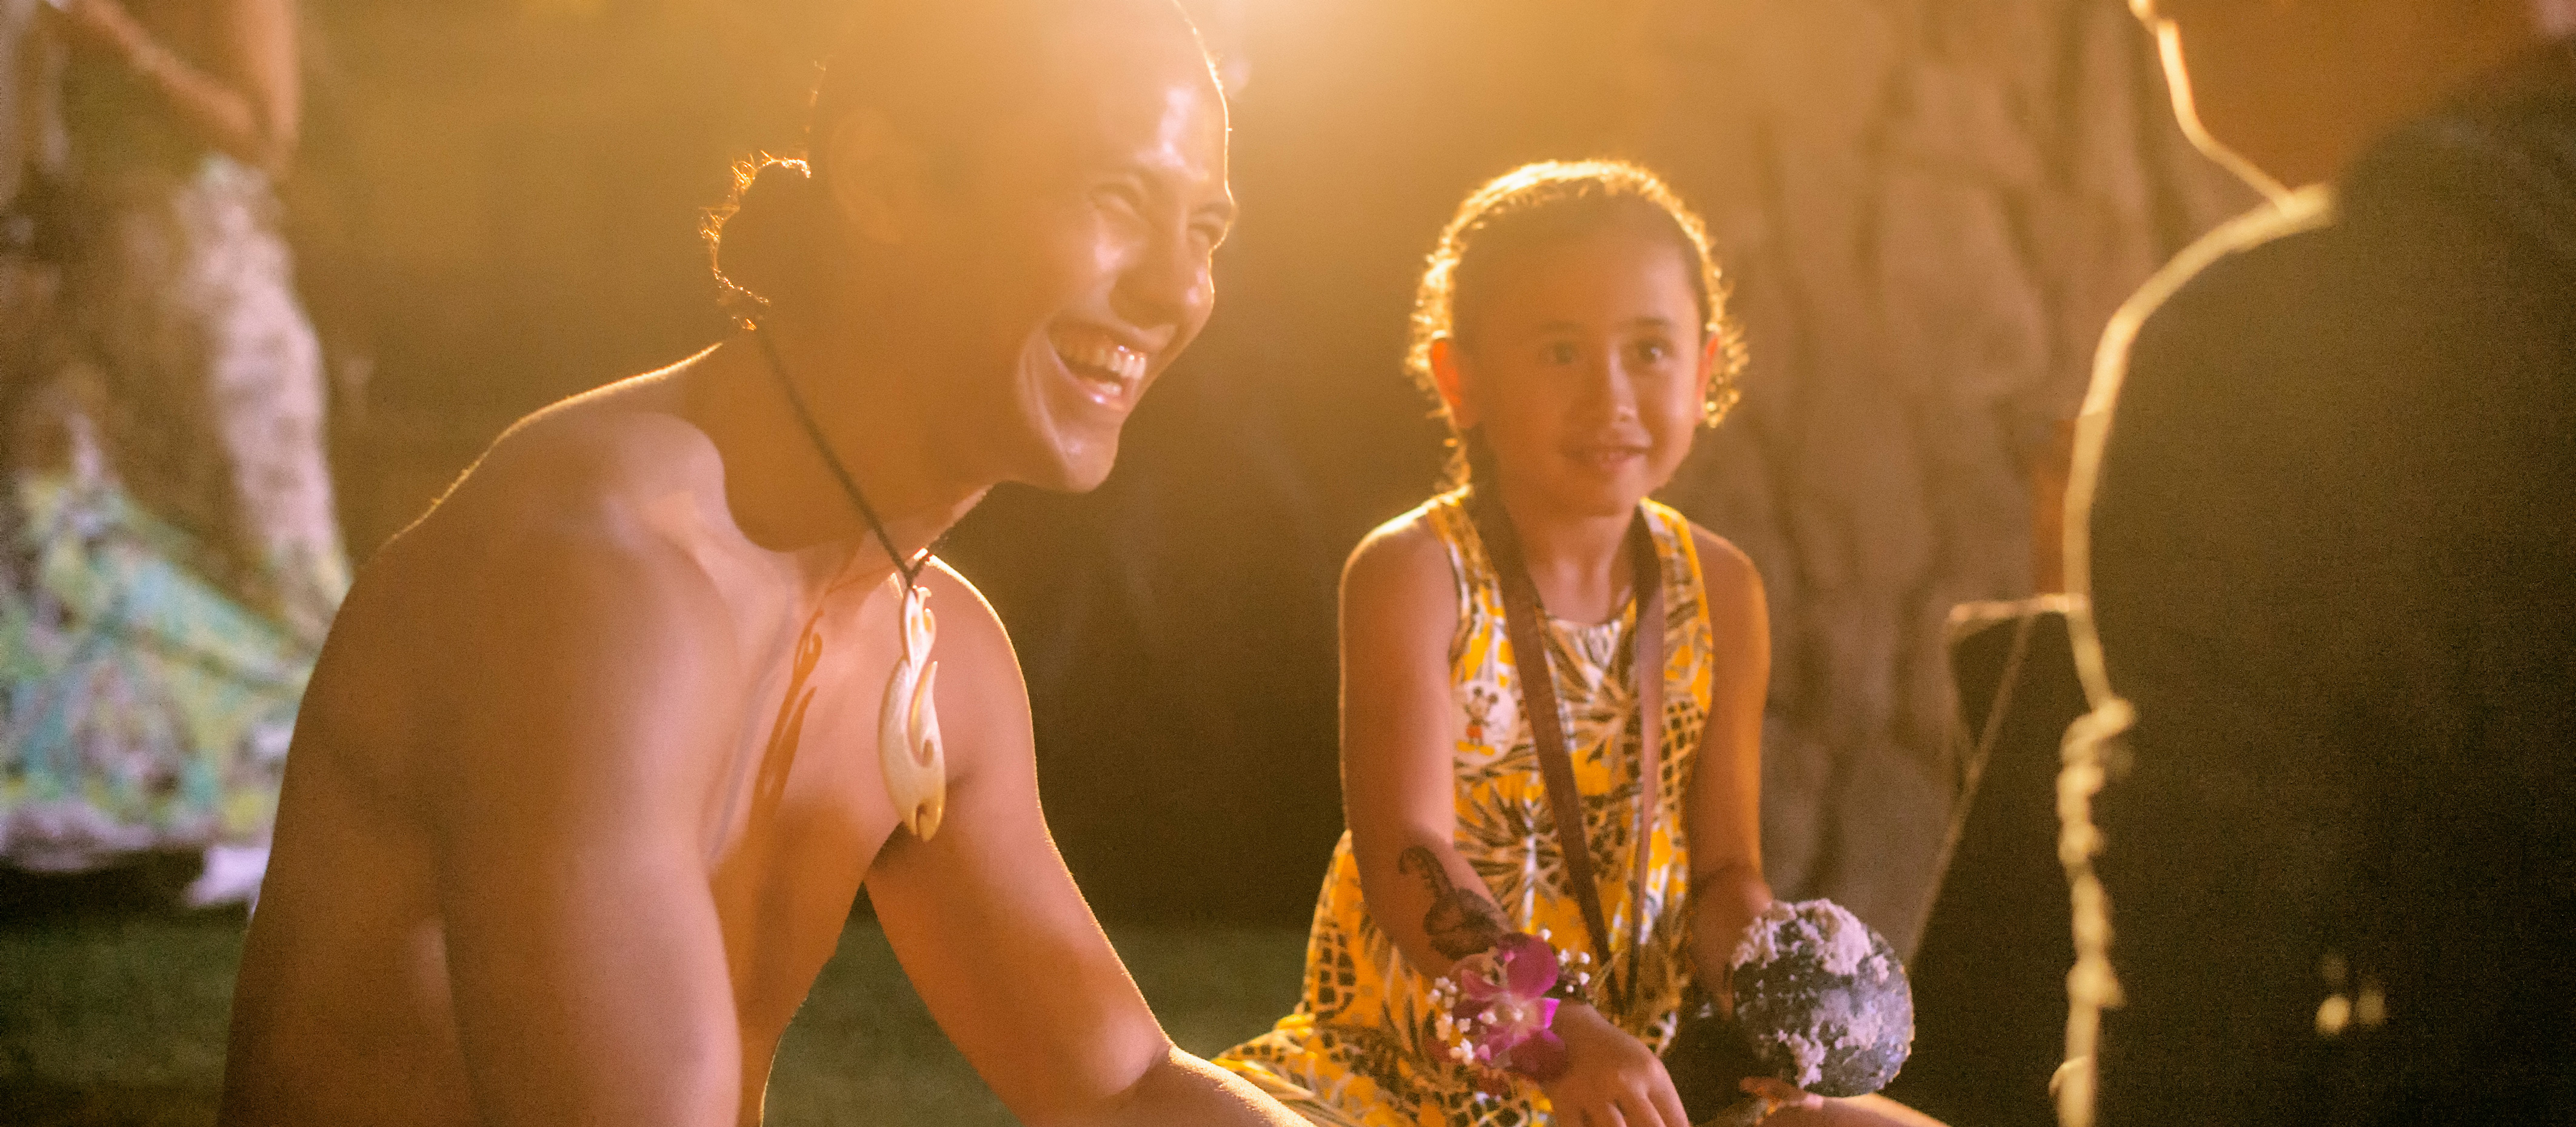 A Ka Wa'a Luau Cast Member wearing a fish hook necklace smiles as he entertains a young girl and her father.